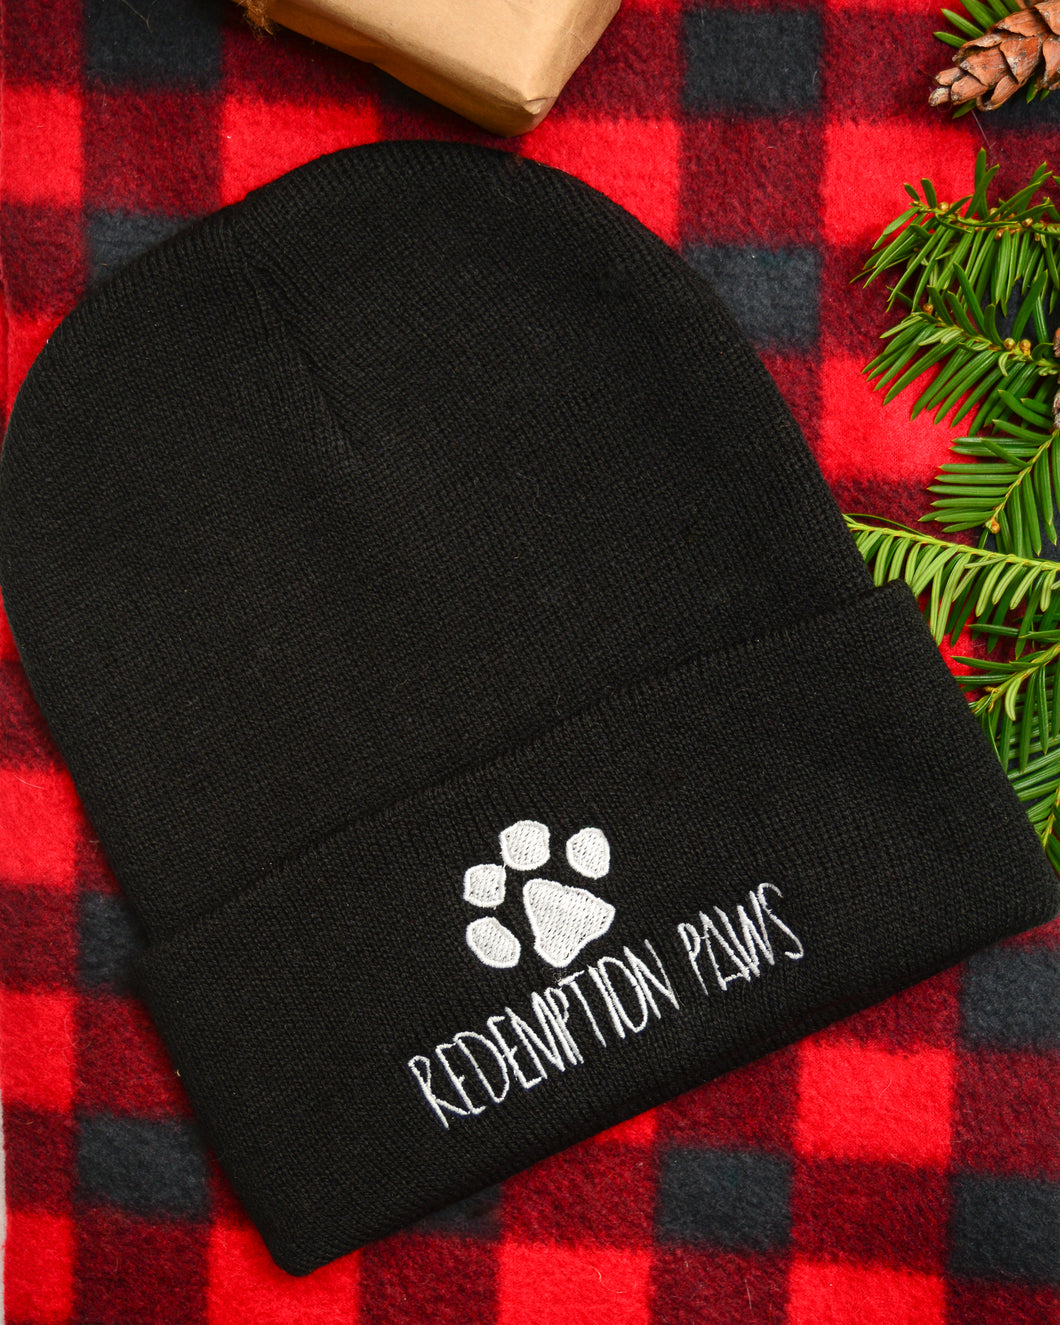 Redemption Paws Toque